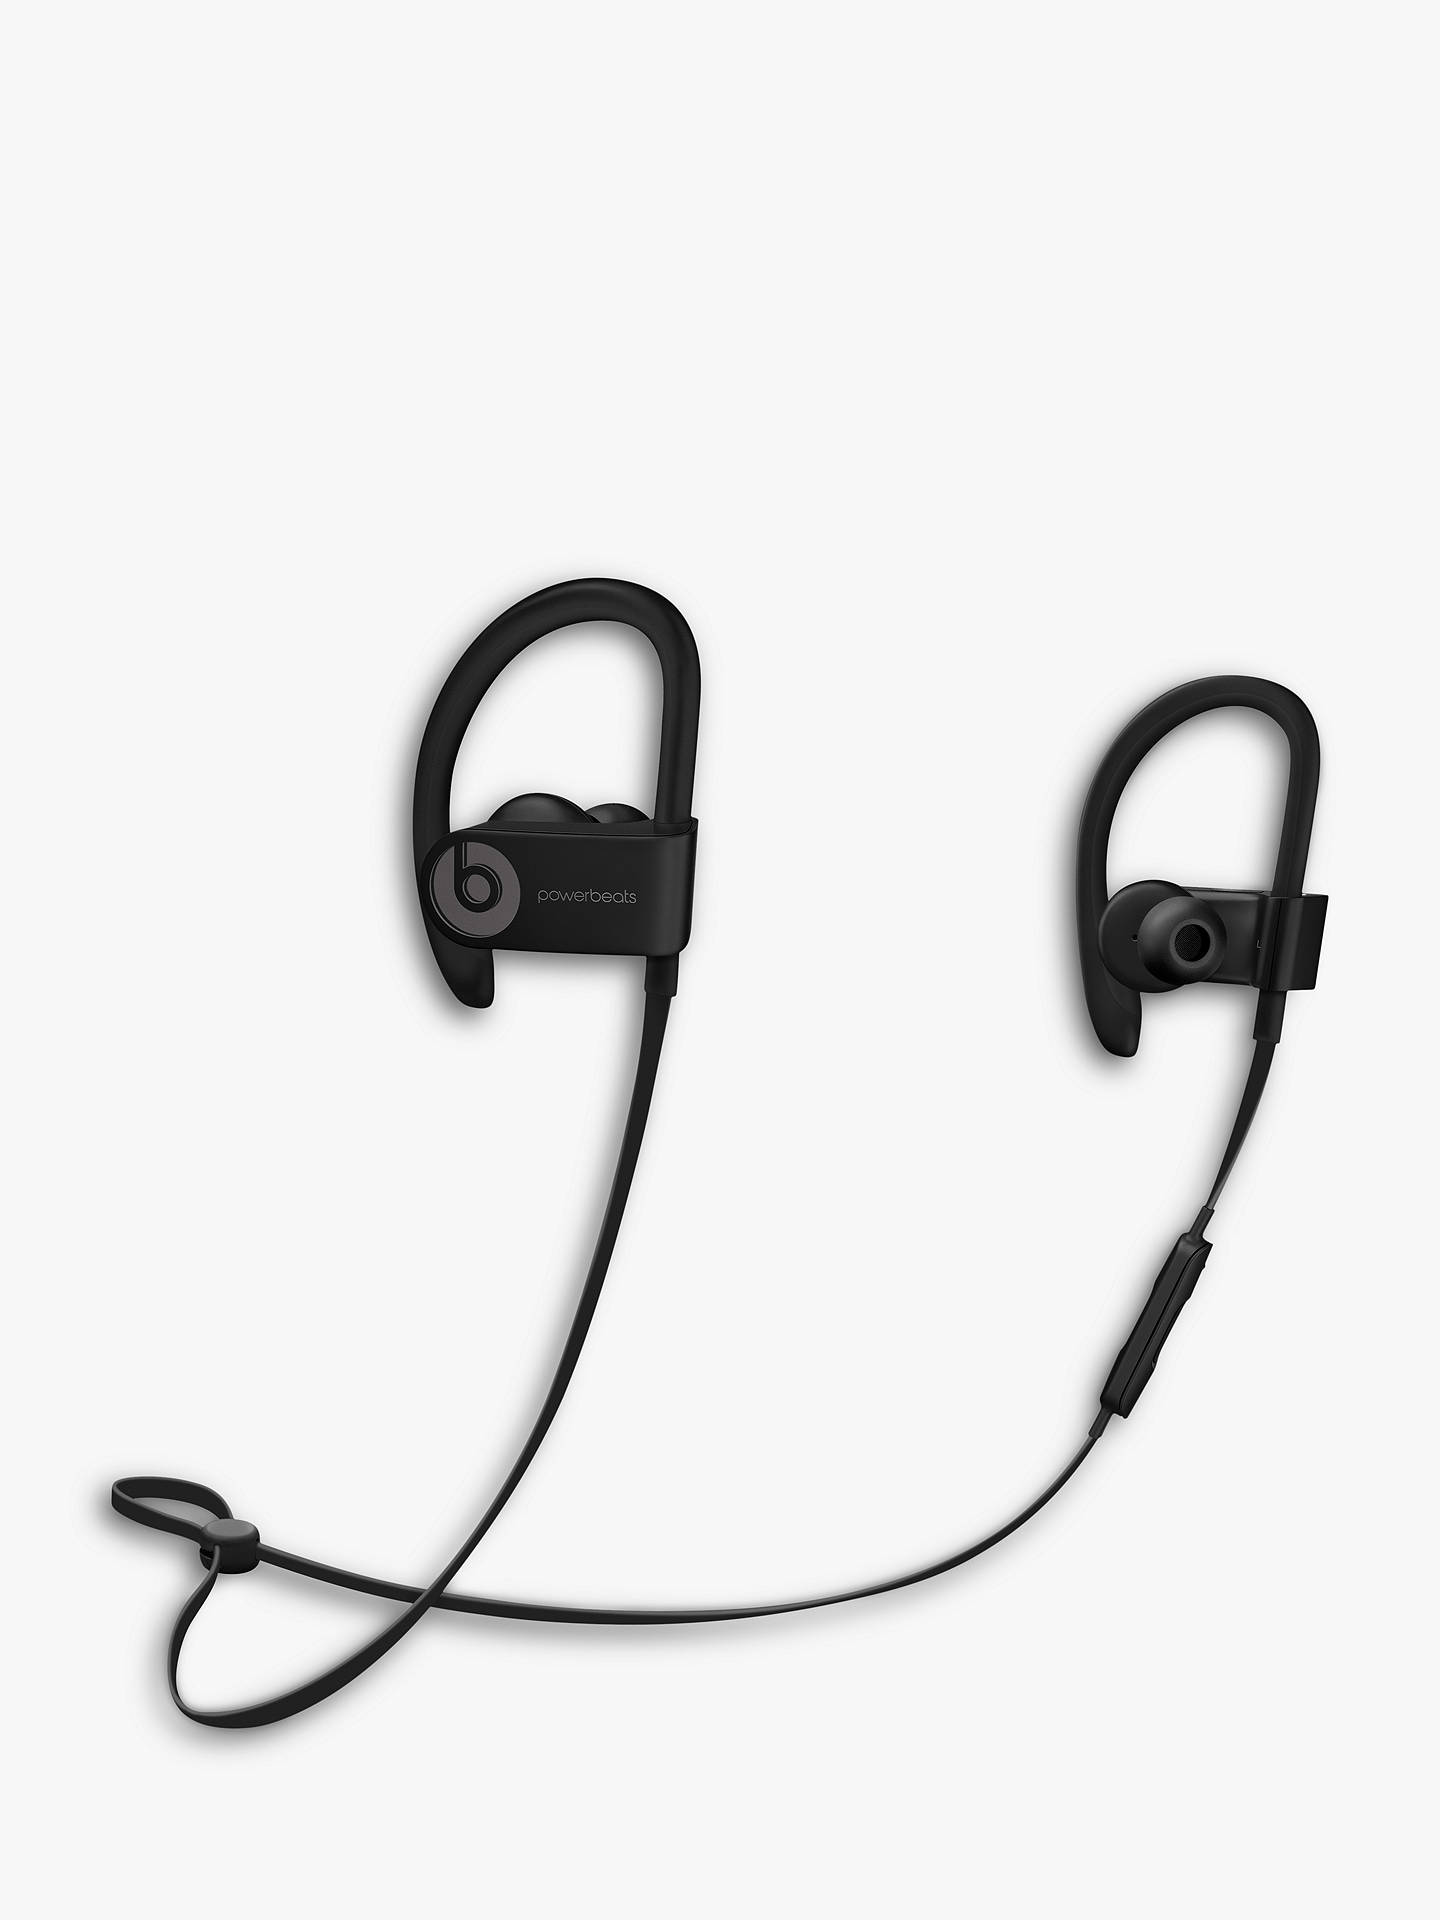 BuyPowerbeats³ Wireless Bluetooth In-Ear Sport Headphones with Mic Remote 269ad6e66